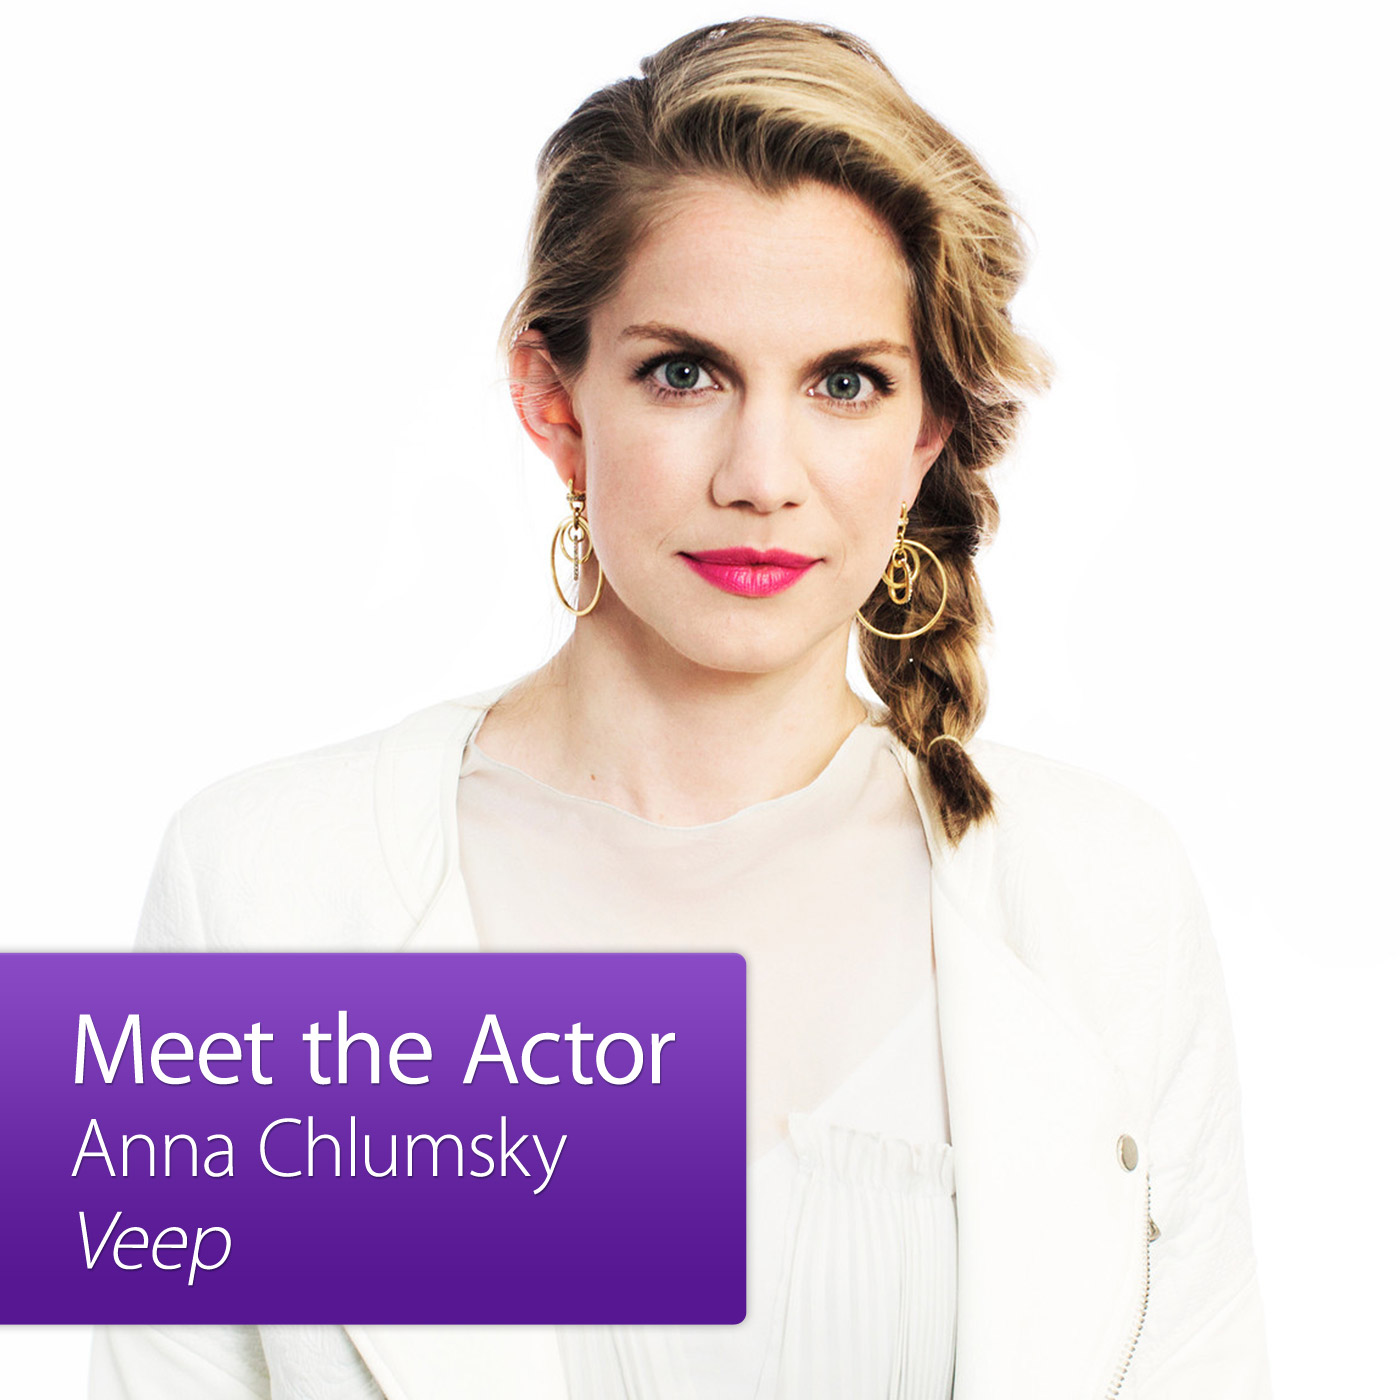 Anna Chlumsky, Veep: Meet the Actor